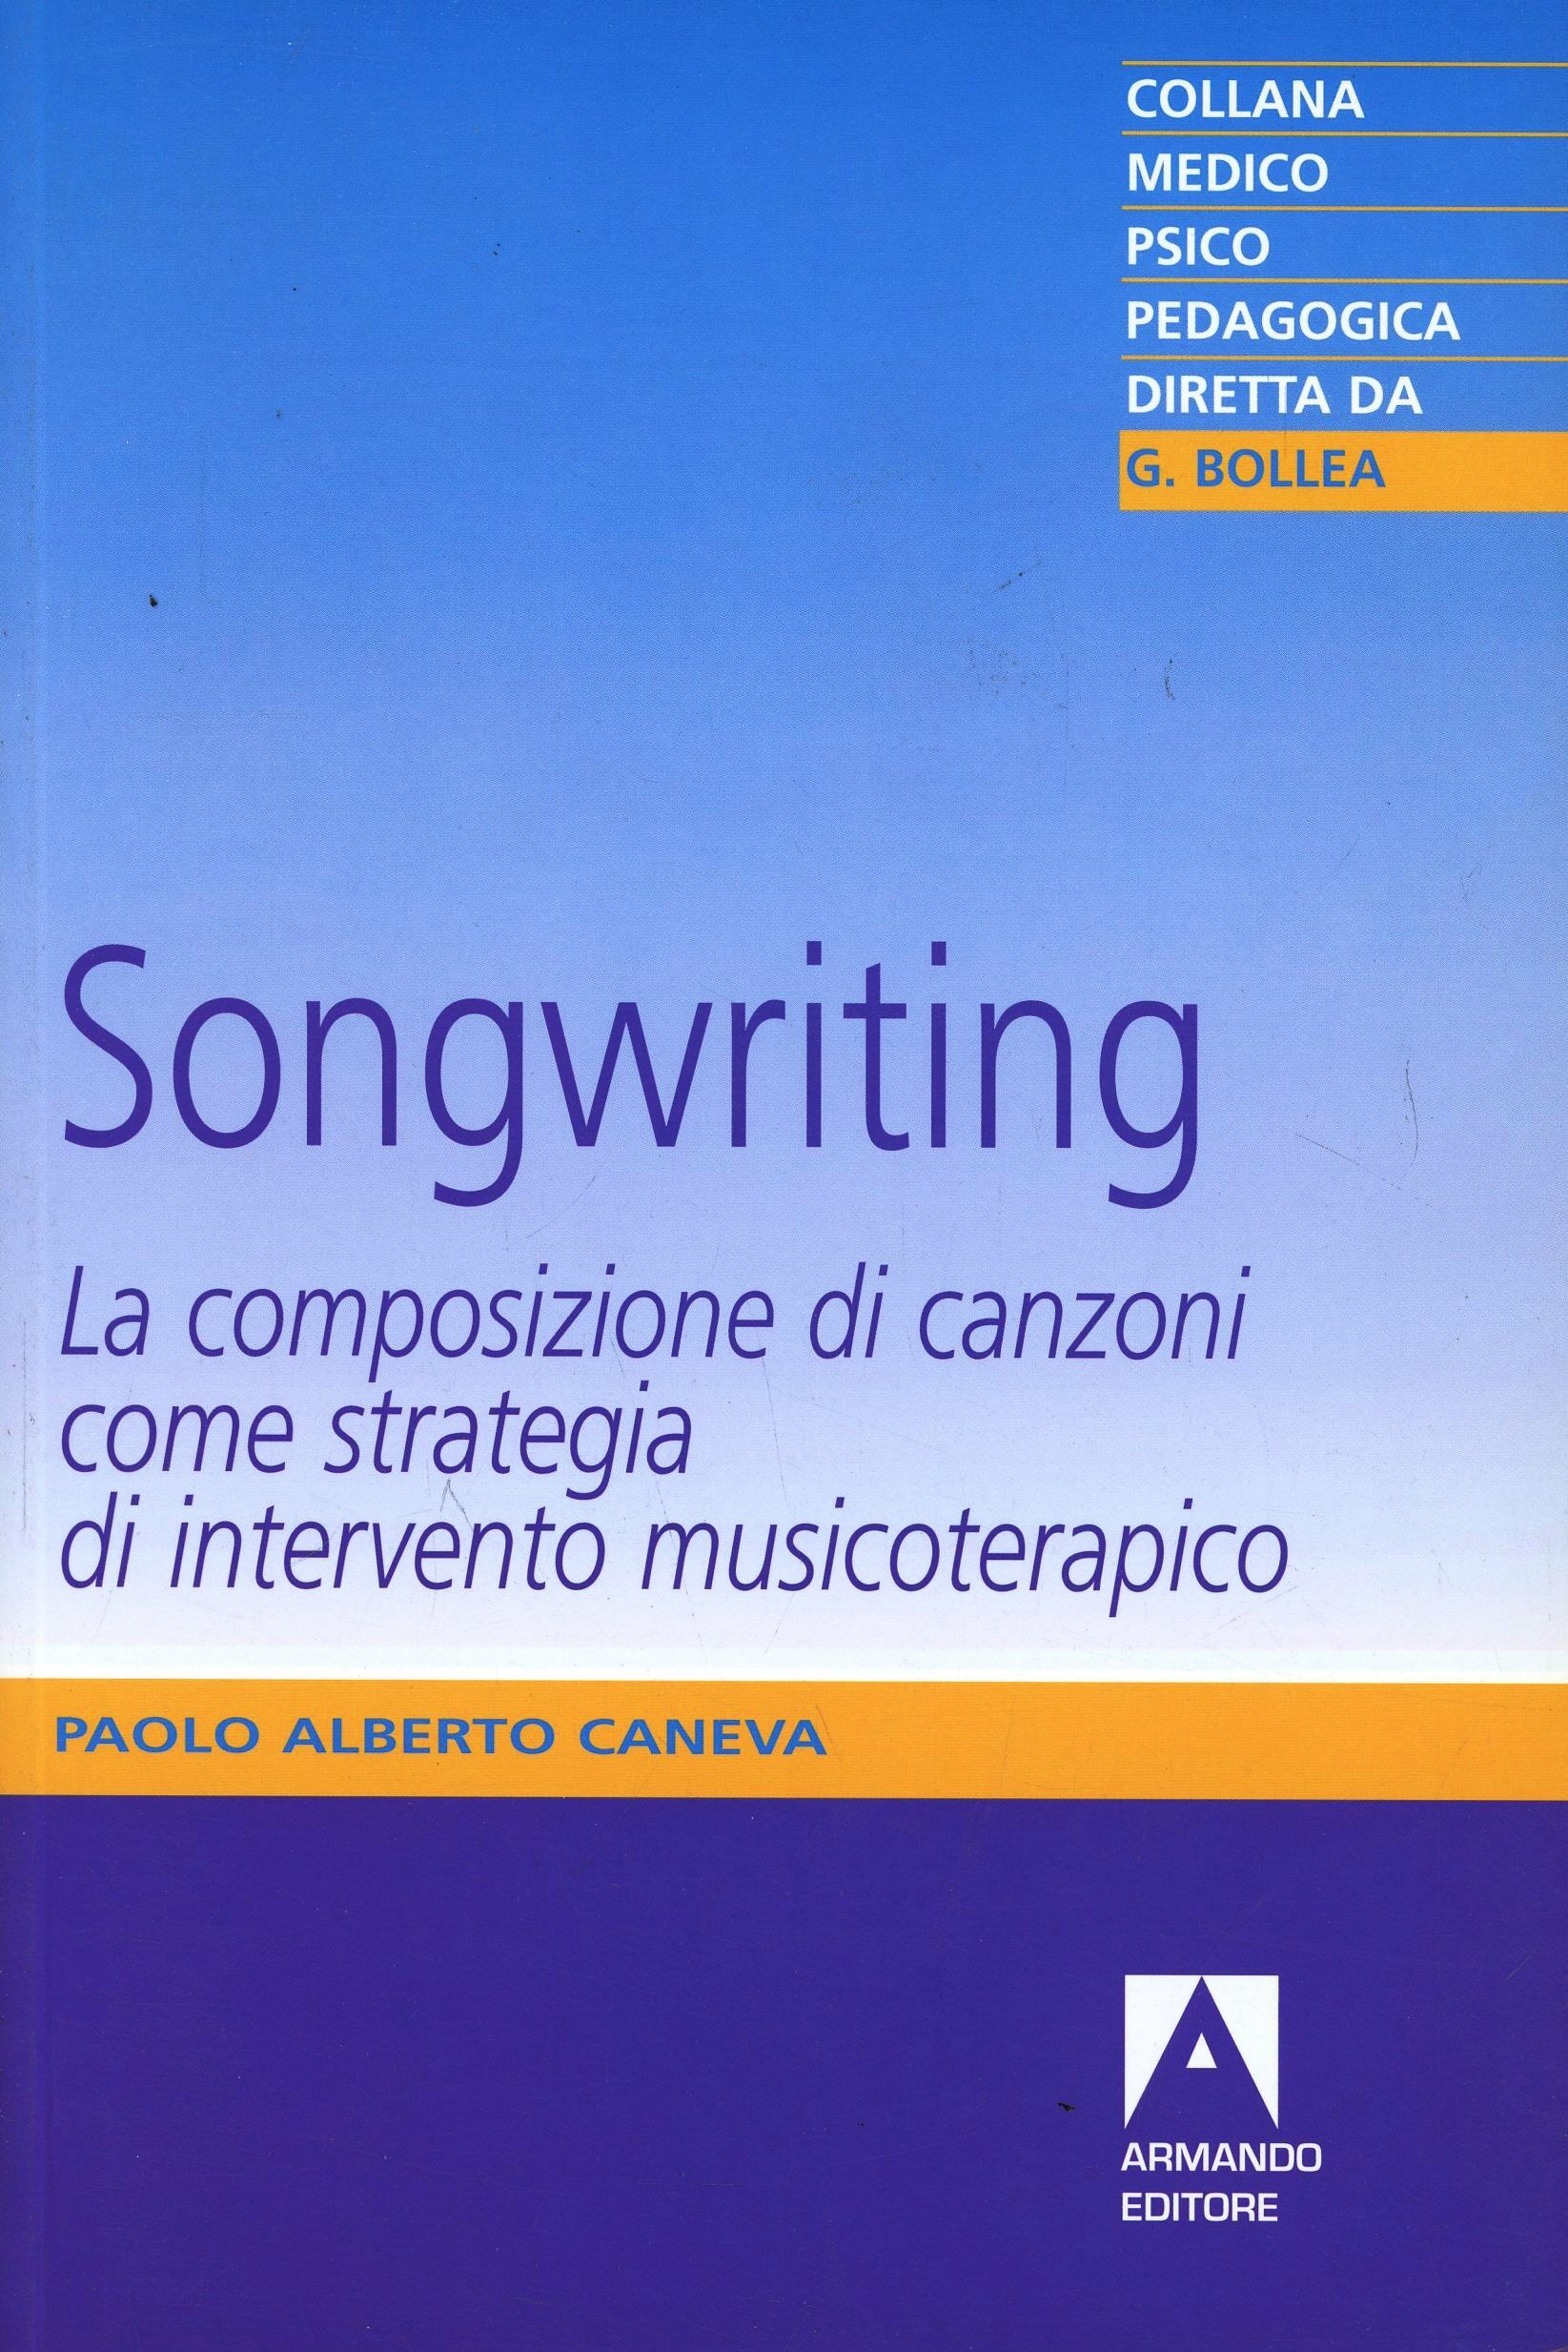 Songwriting program